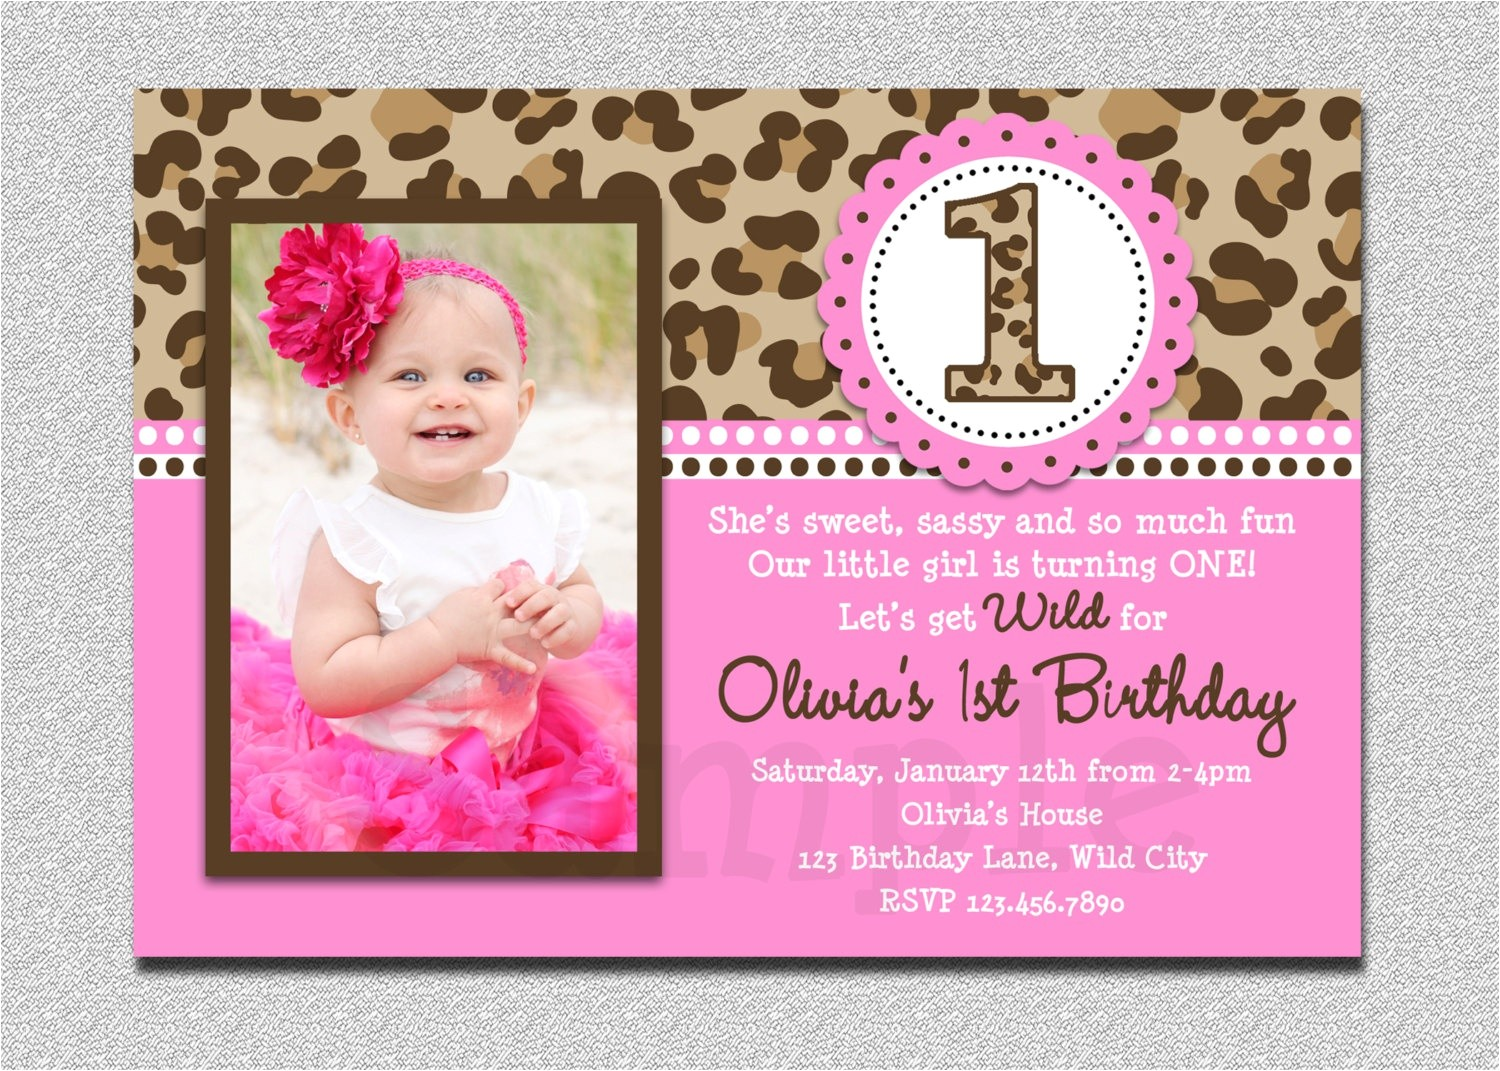 tips walgreens birthday invites templates alluring layout the walgreens birthday invitations birthday invites walgreens birthday silverlininginvitations